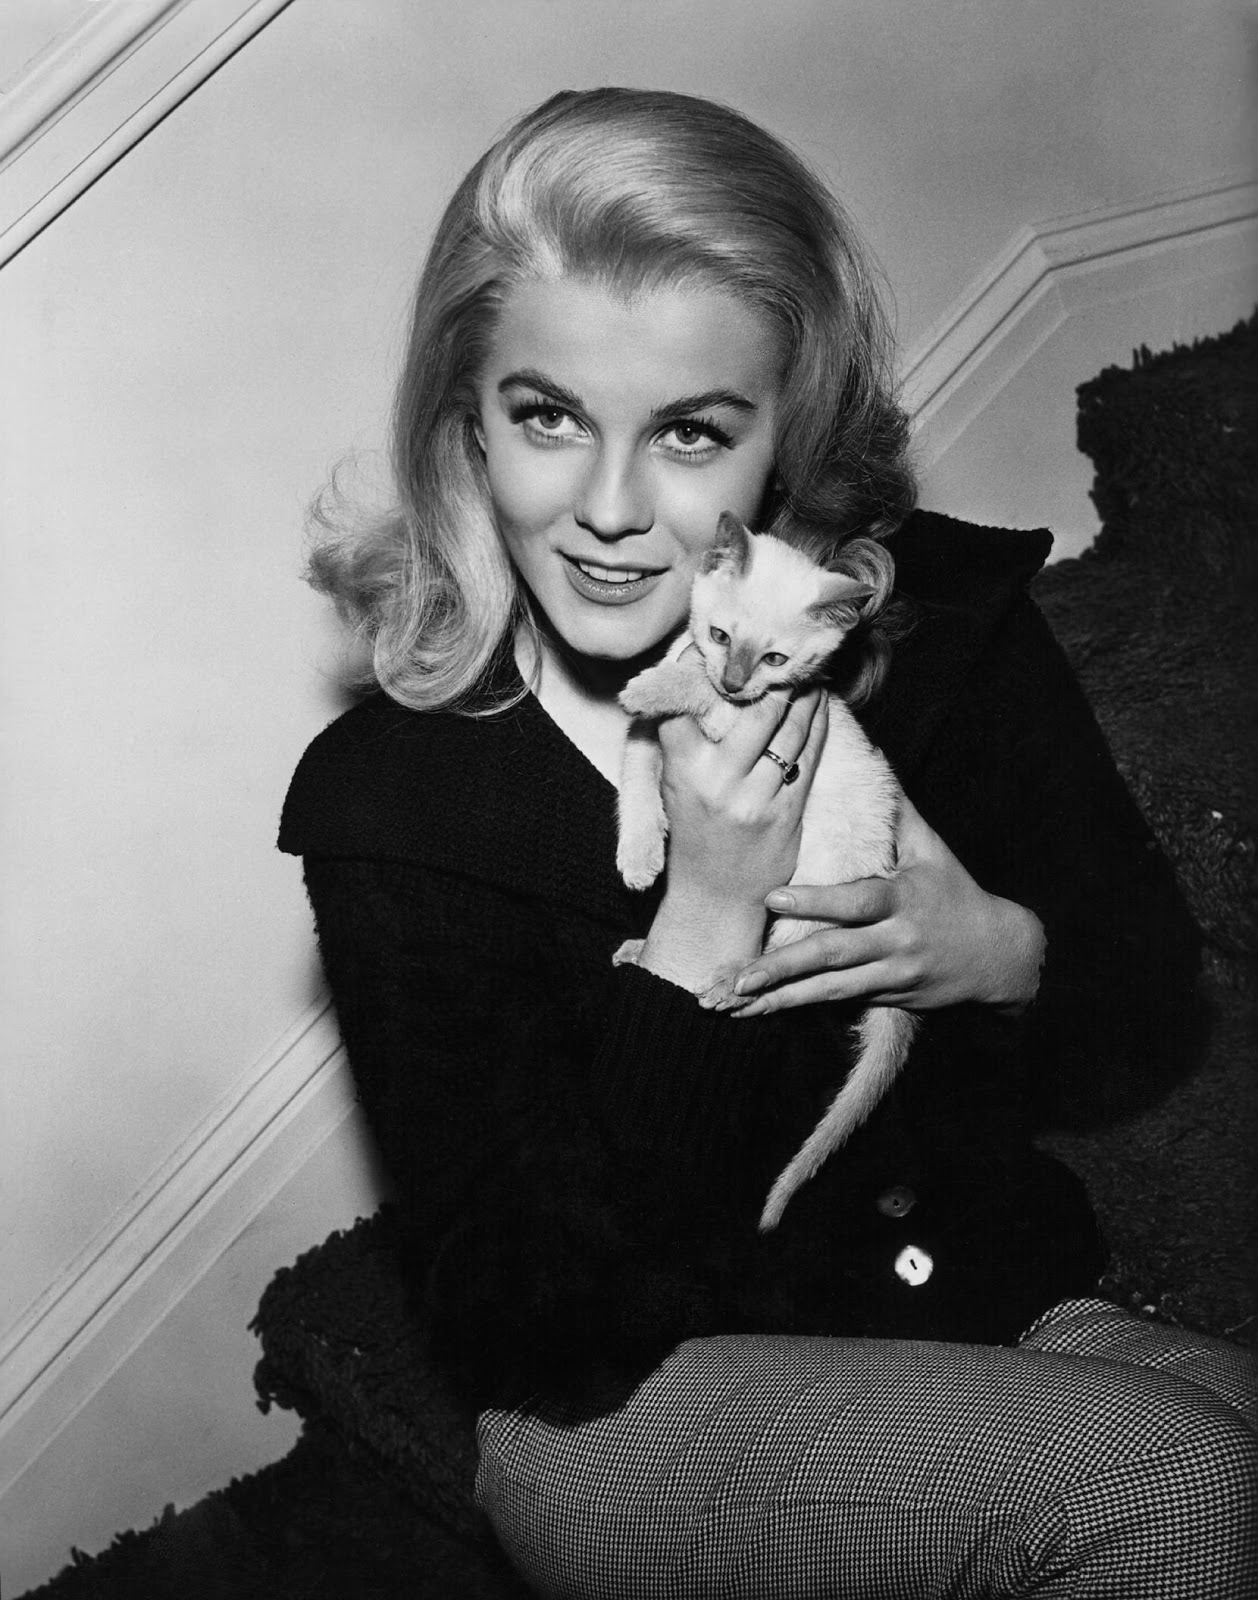 Ann margret submited images